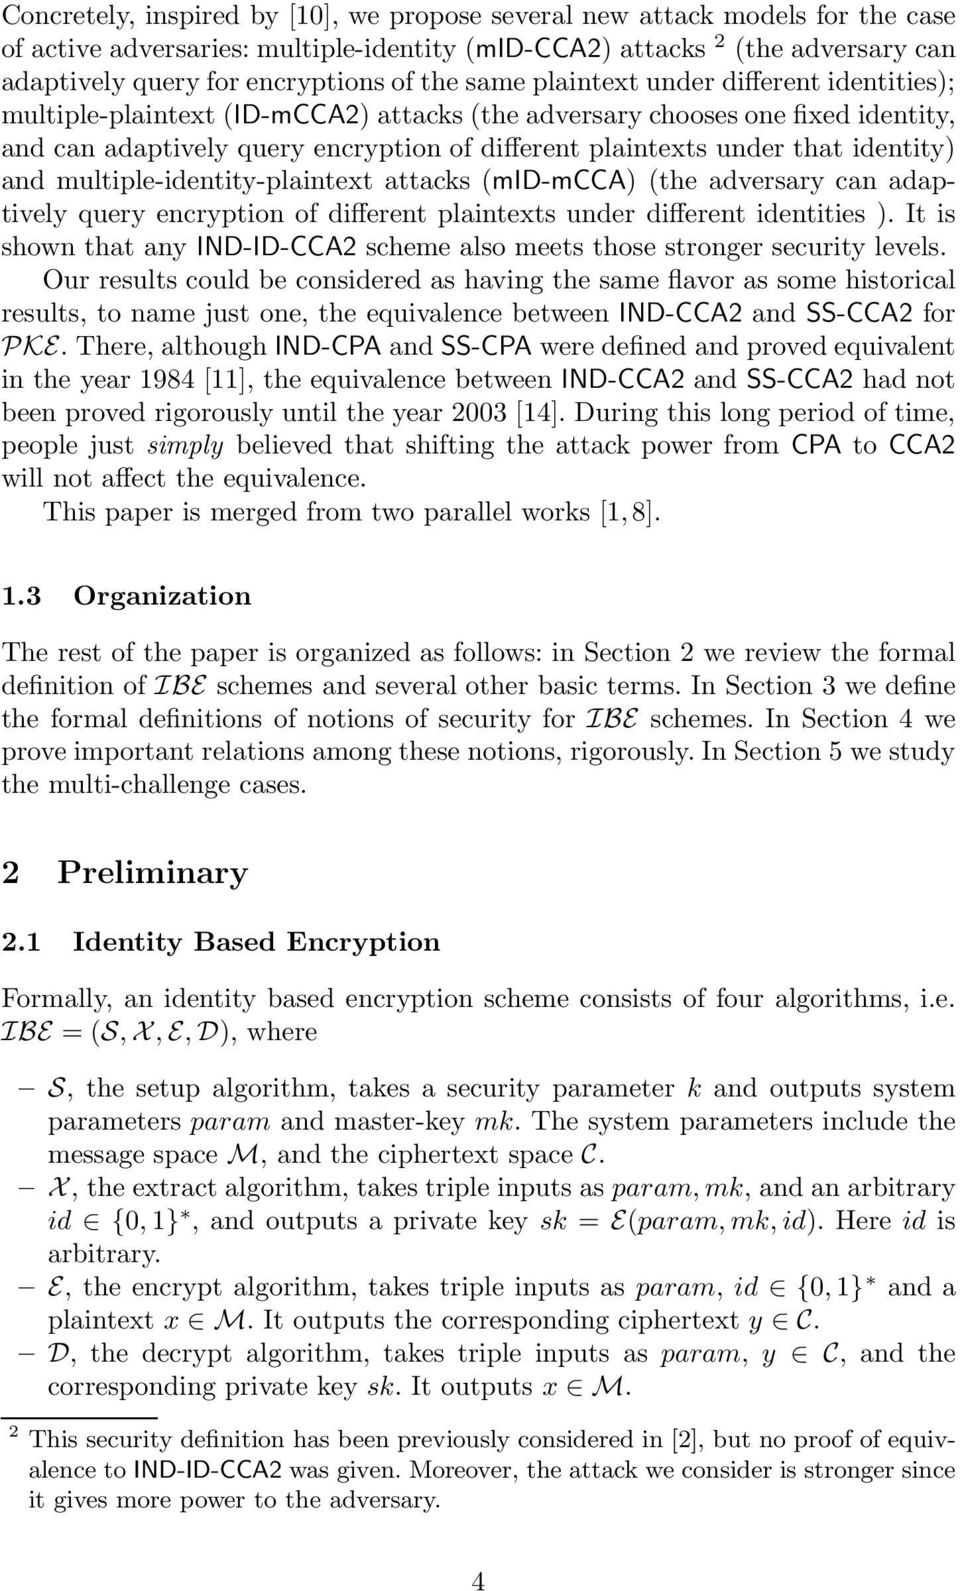 identity) and multiple-identity-plaintext attacks (mid-mcca) (the adversary can adaptively query encryption of different plaintexts under different identities ).